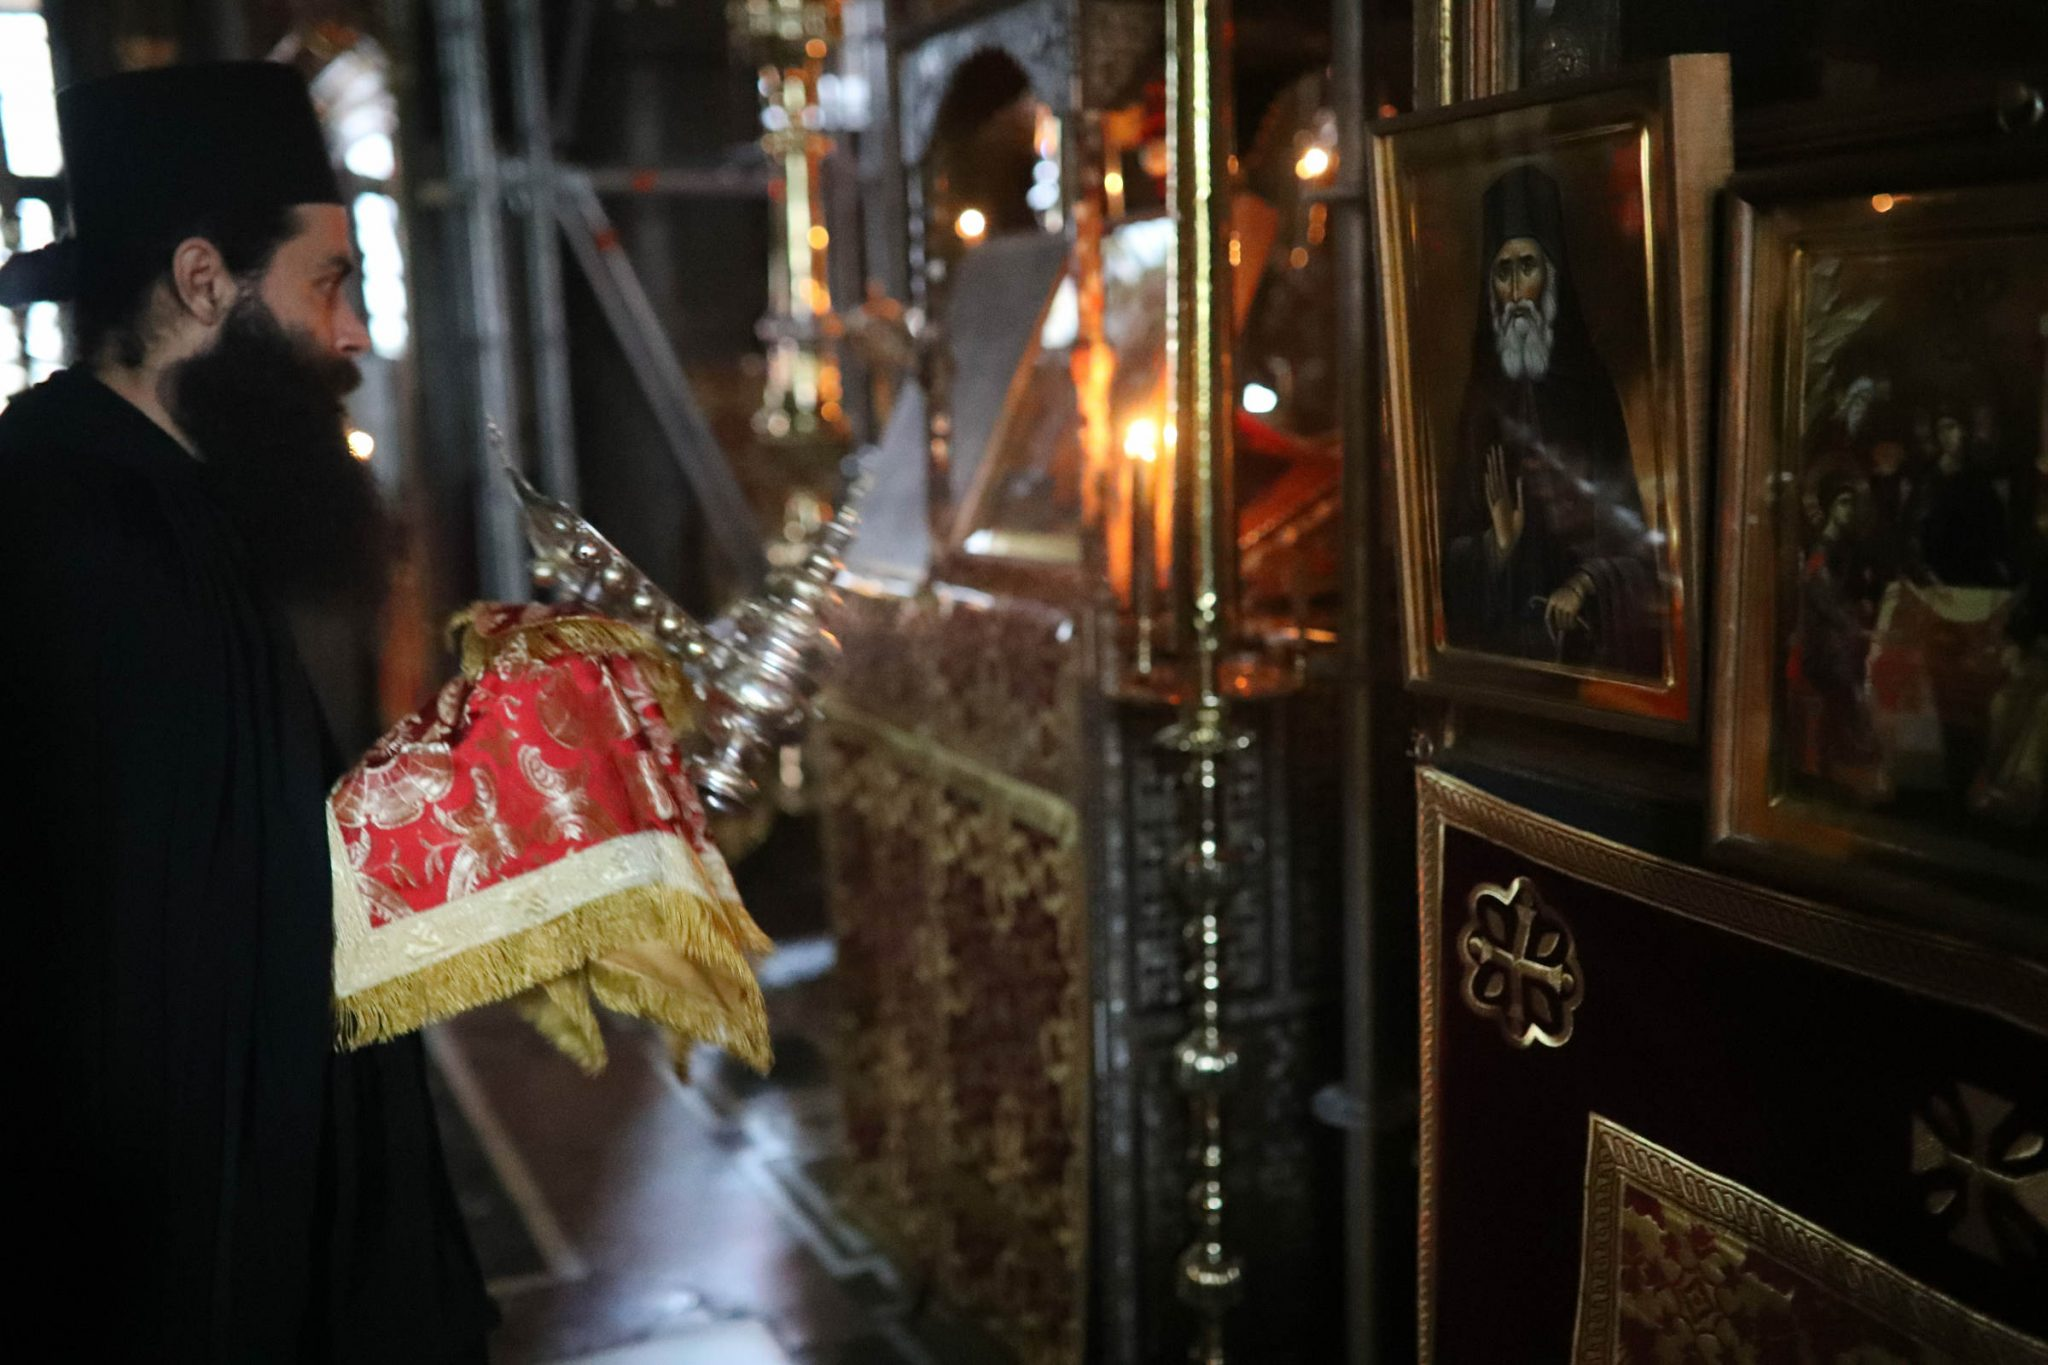 Saint Paisios of Mount Athos' feast: incensing the icon